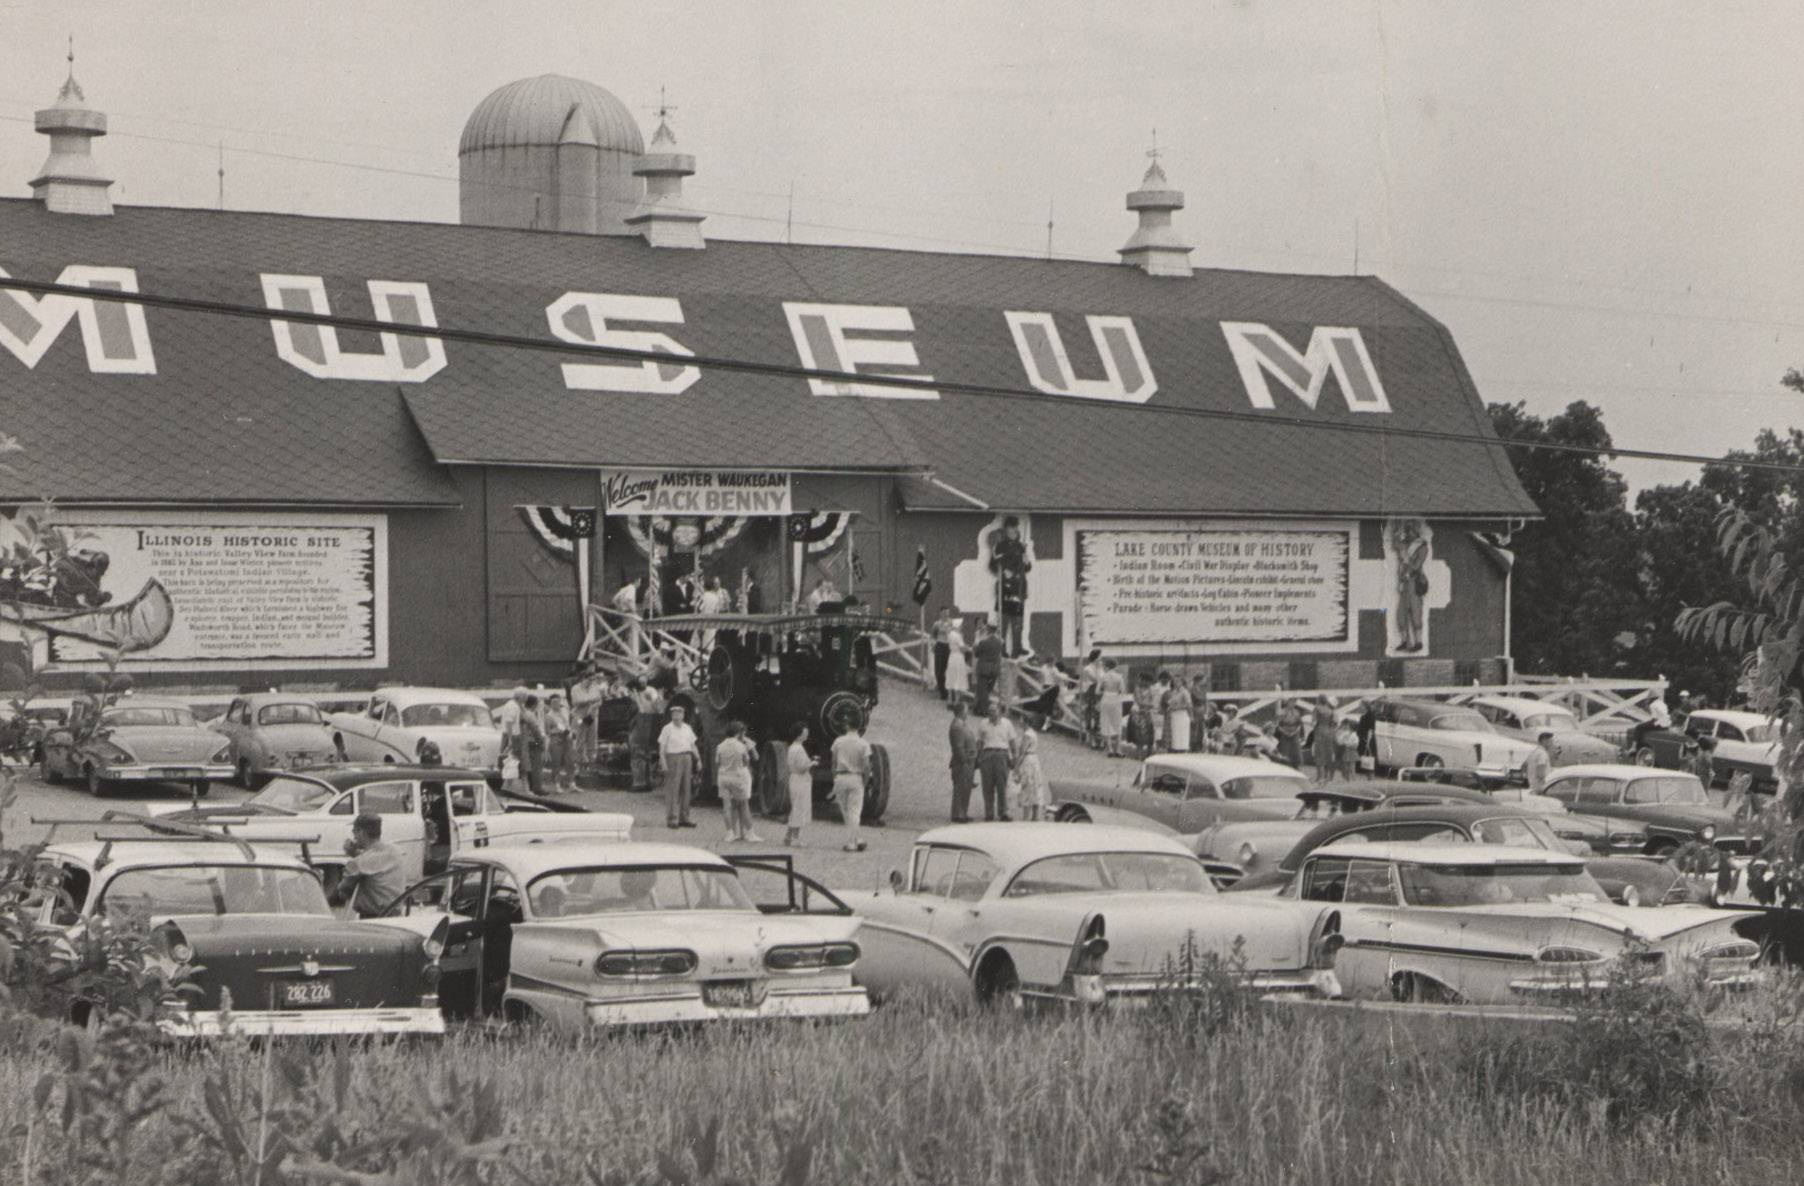 Cars fill the parking lot at the Wadsworth Road Museum of History, the precursor of the Lake County Discovery Museum.